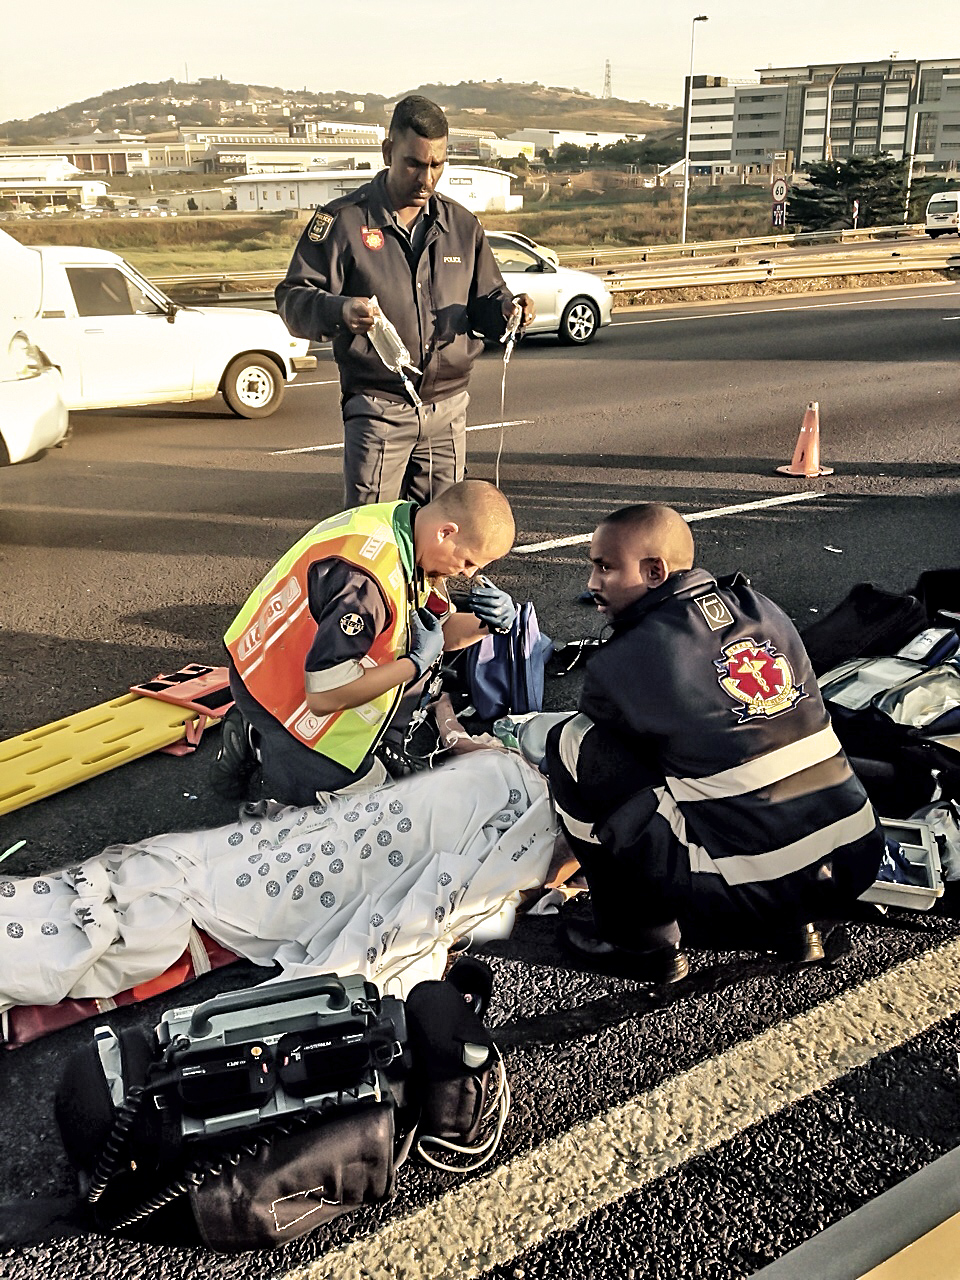 N2 North pedestrian crash leaves man critically injured